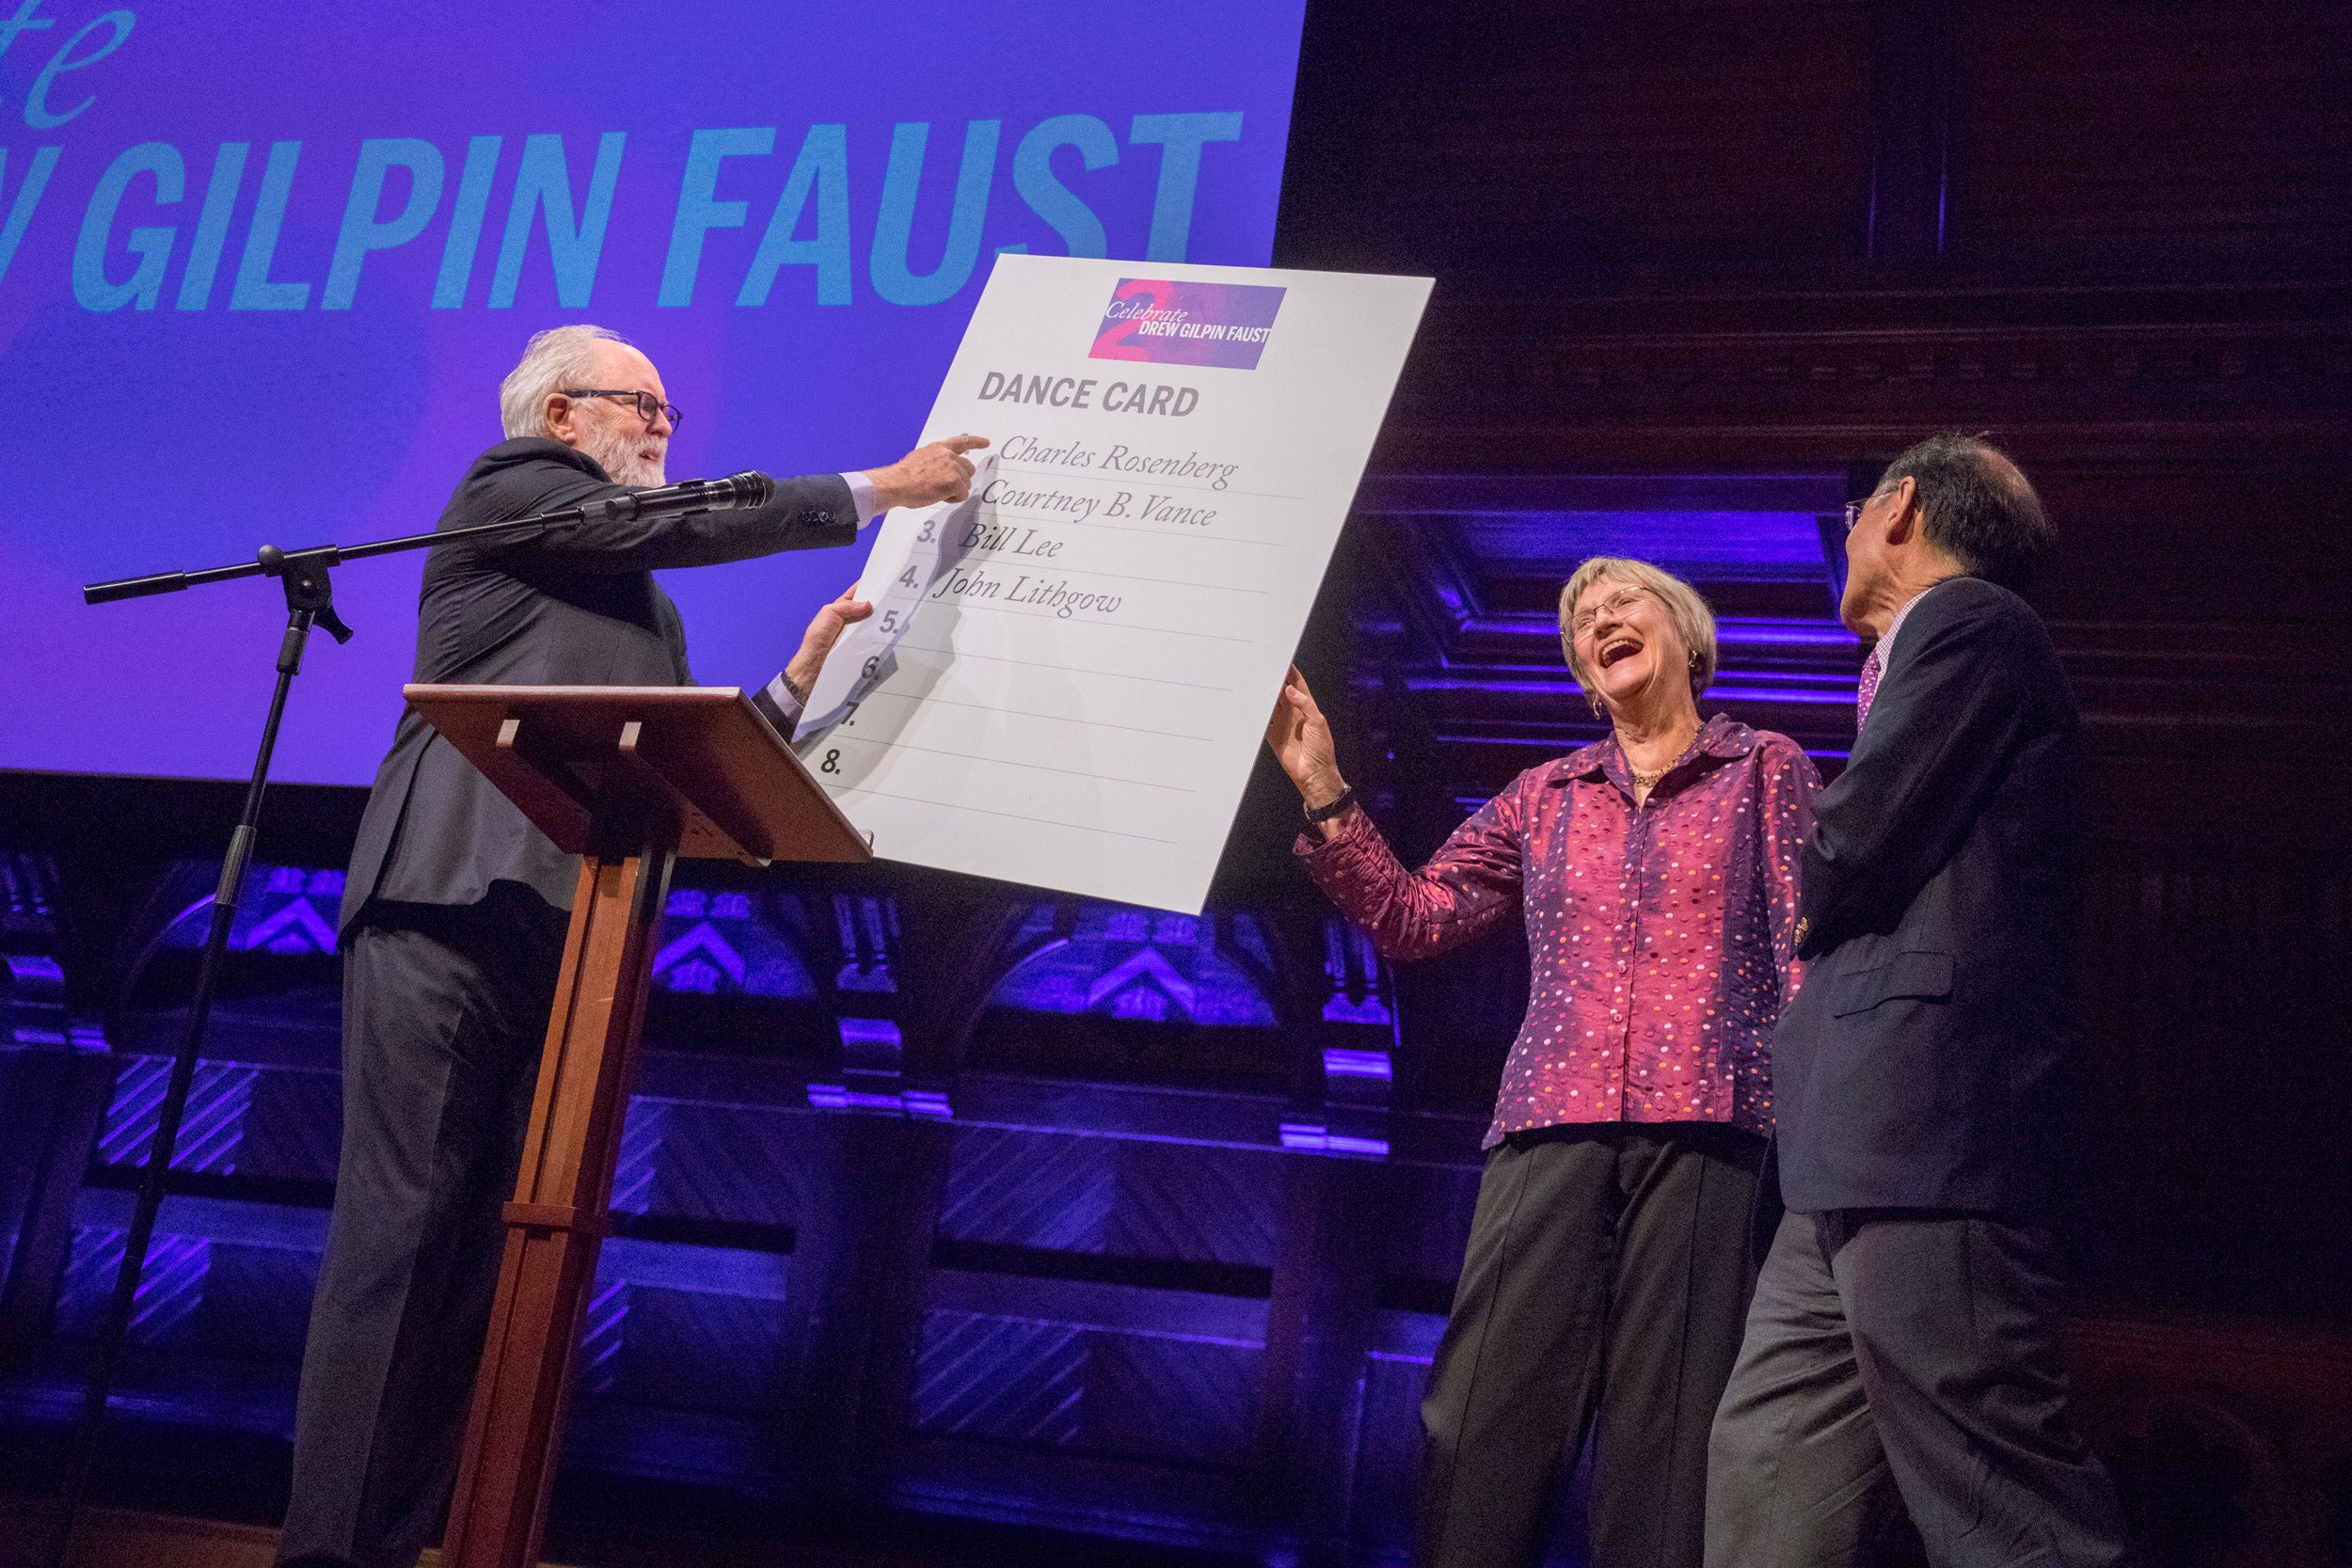 John Lithgow on stage with Drew Faust and Bill Lee.